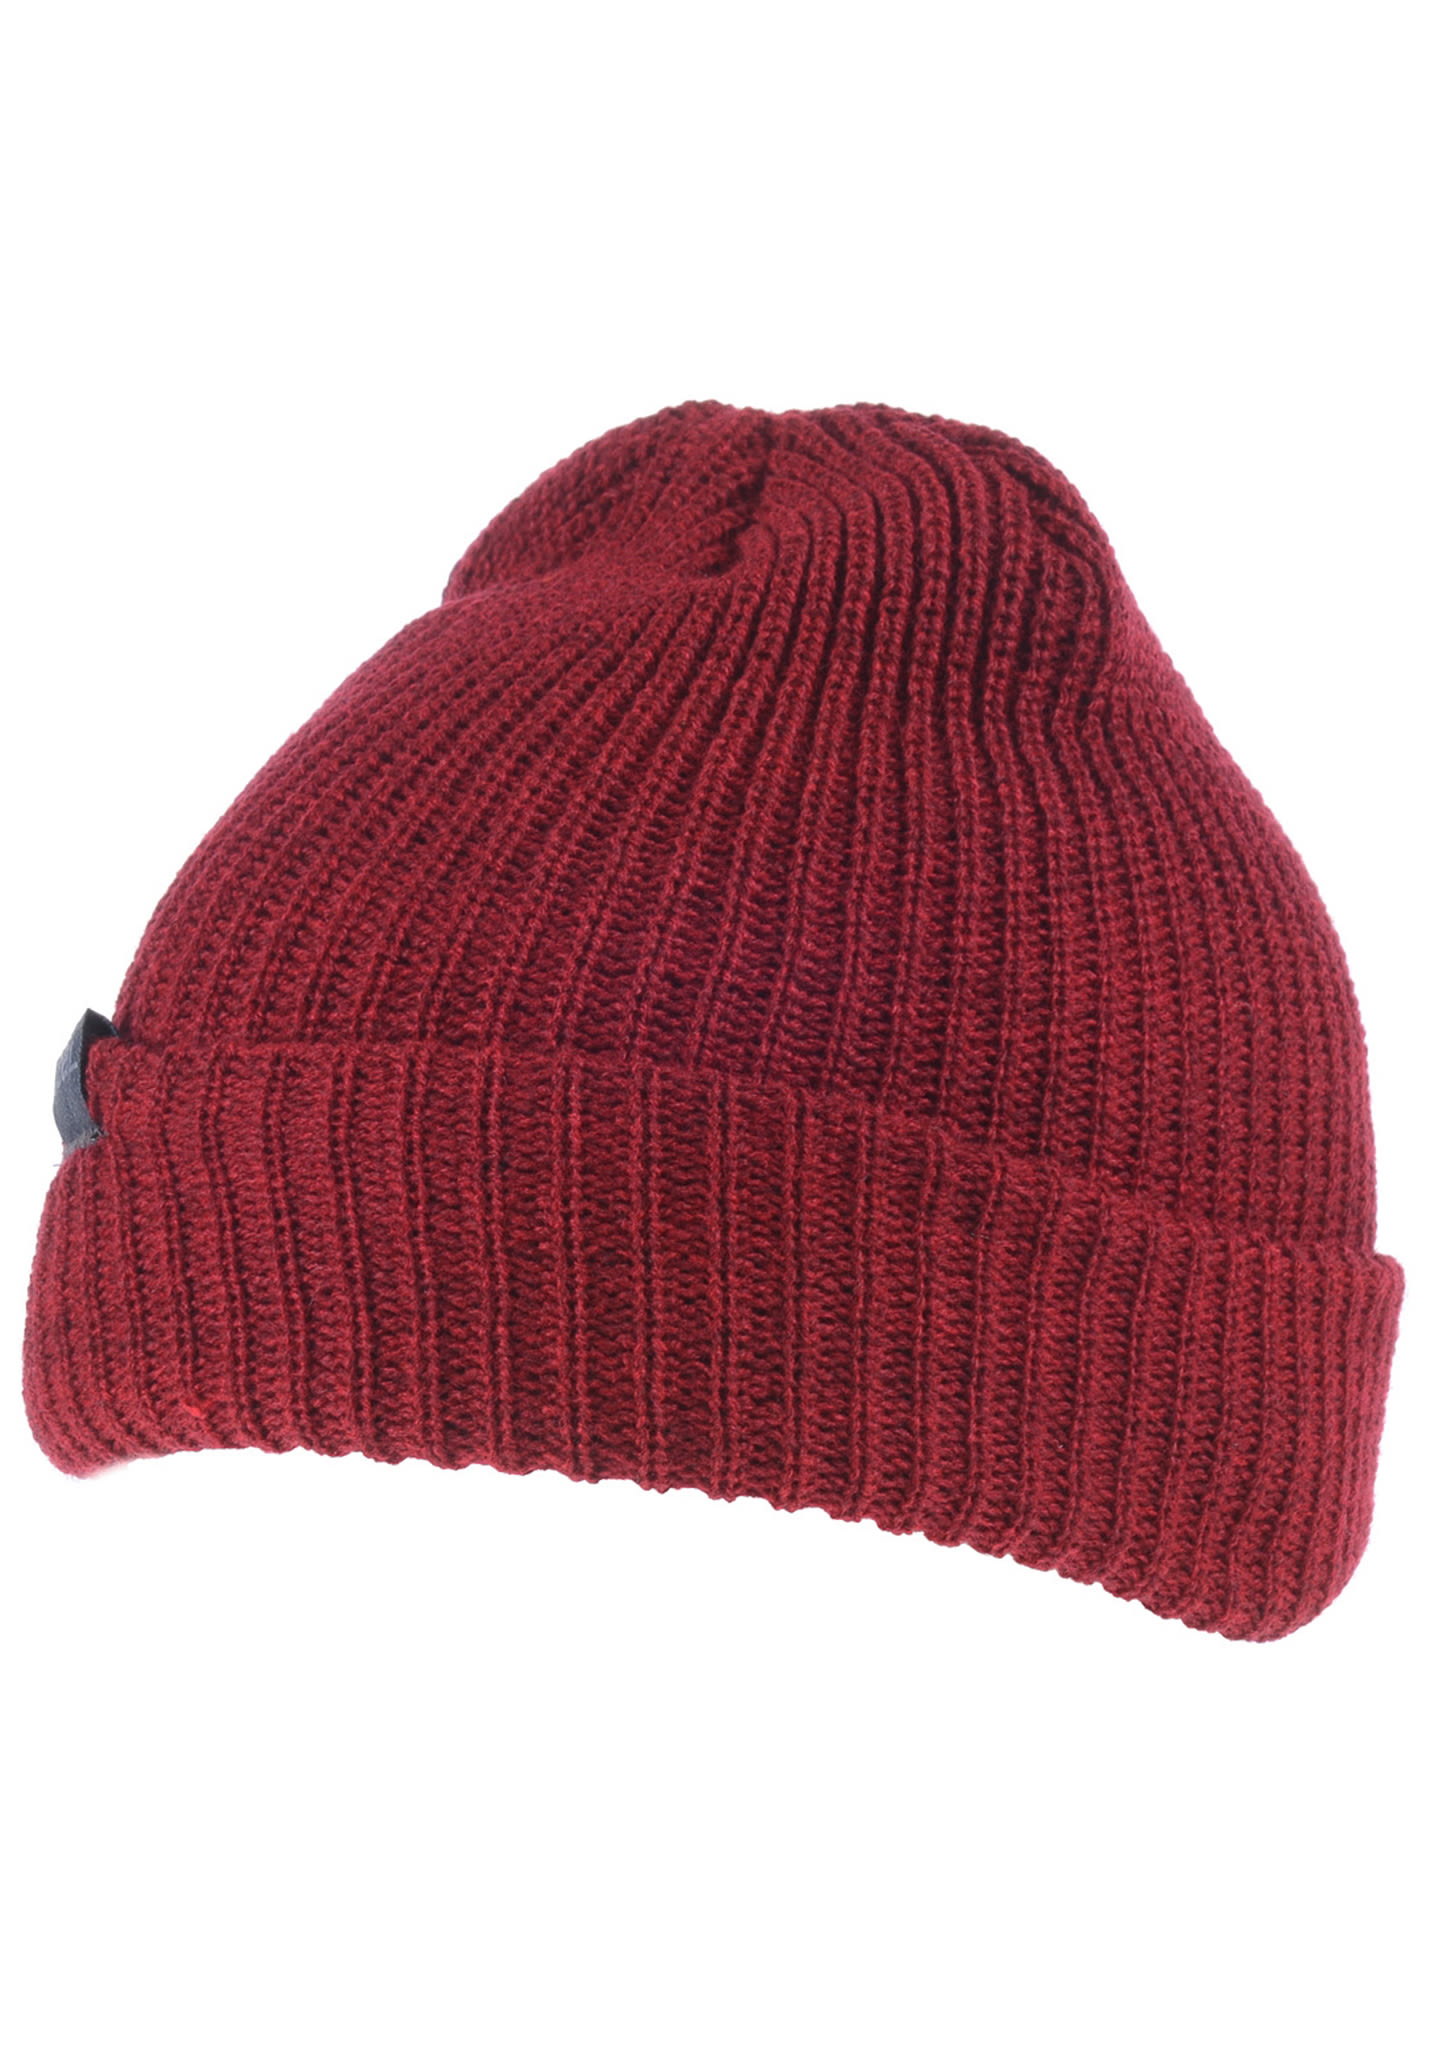 Coal The Stanley - Beanie - Red - Planet Sports 1f3cbce47239